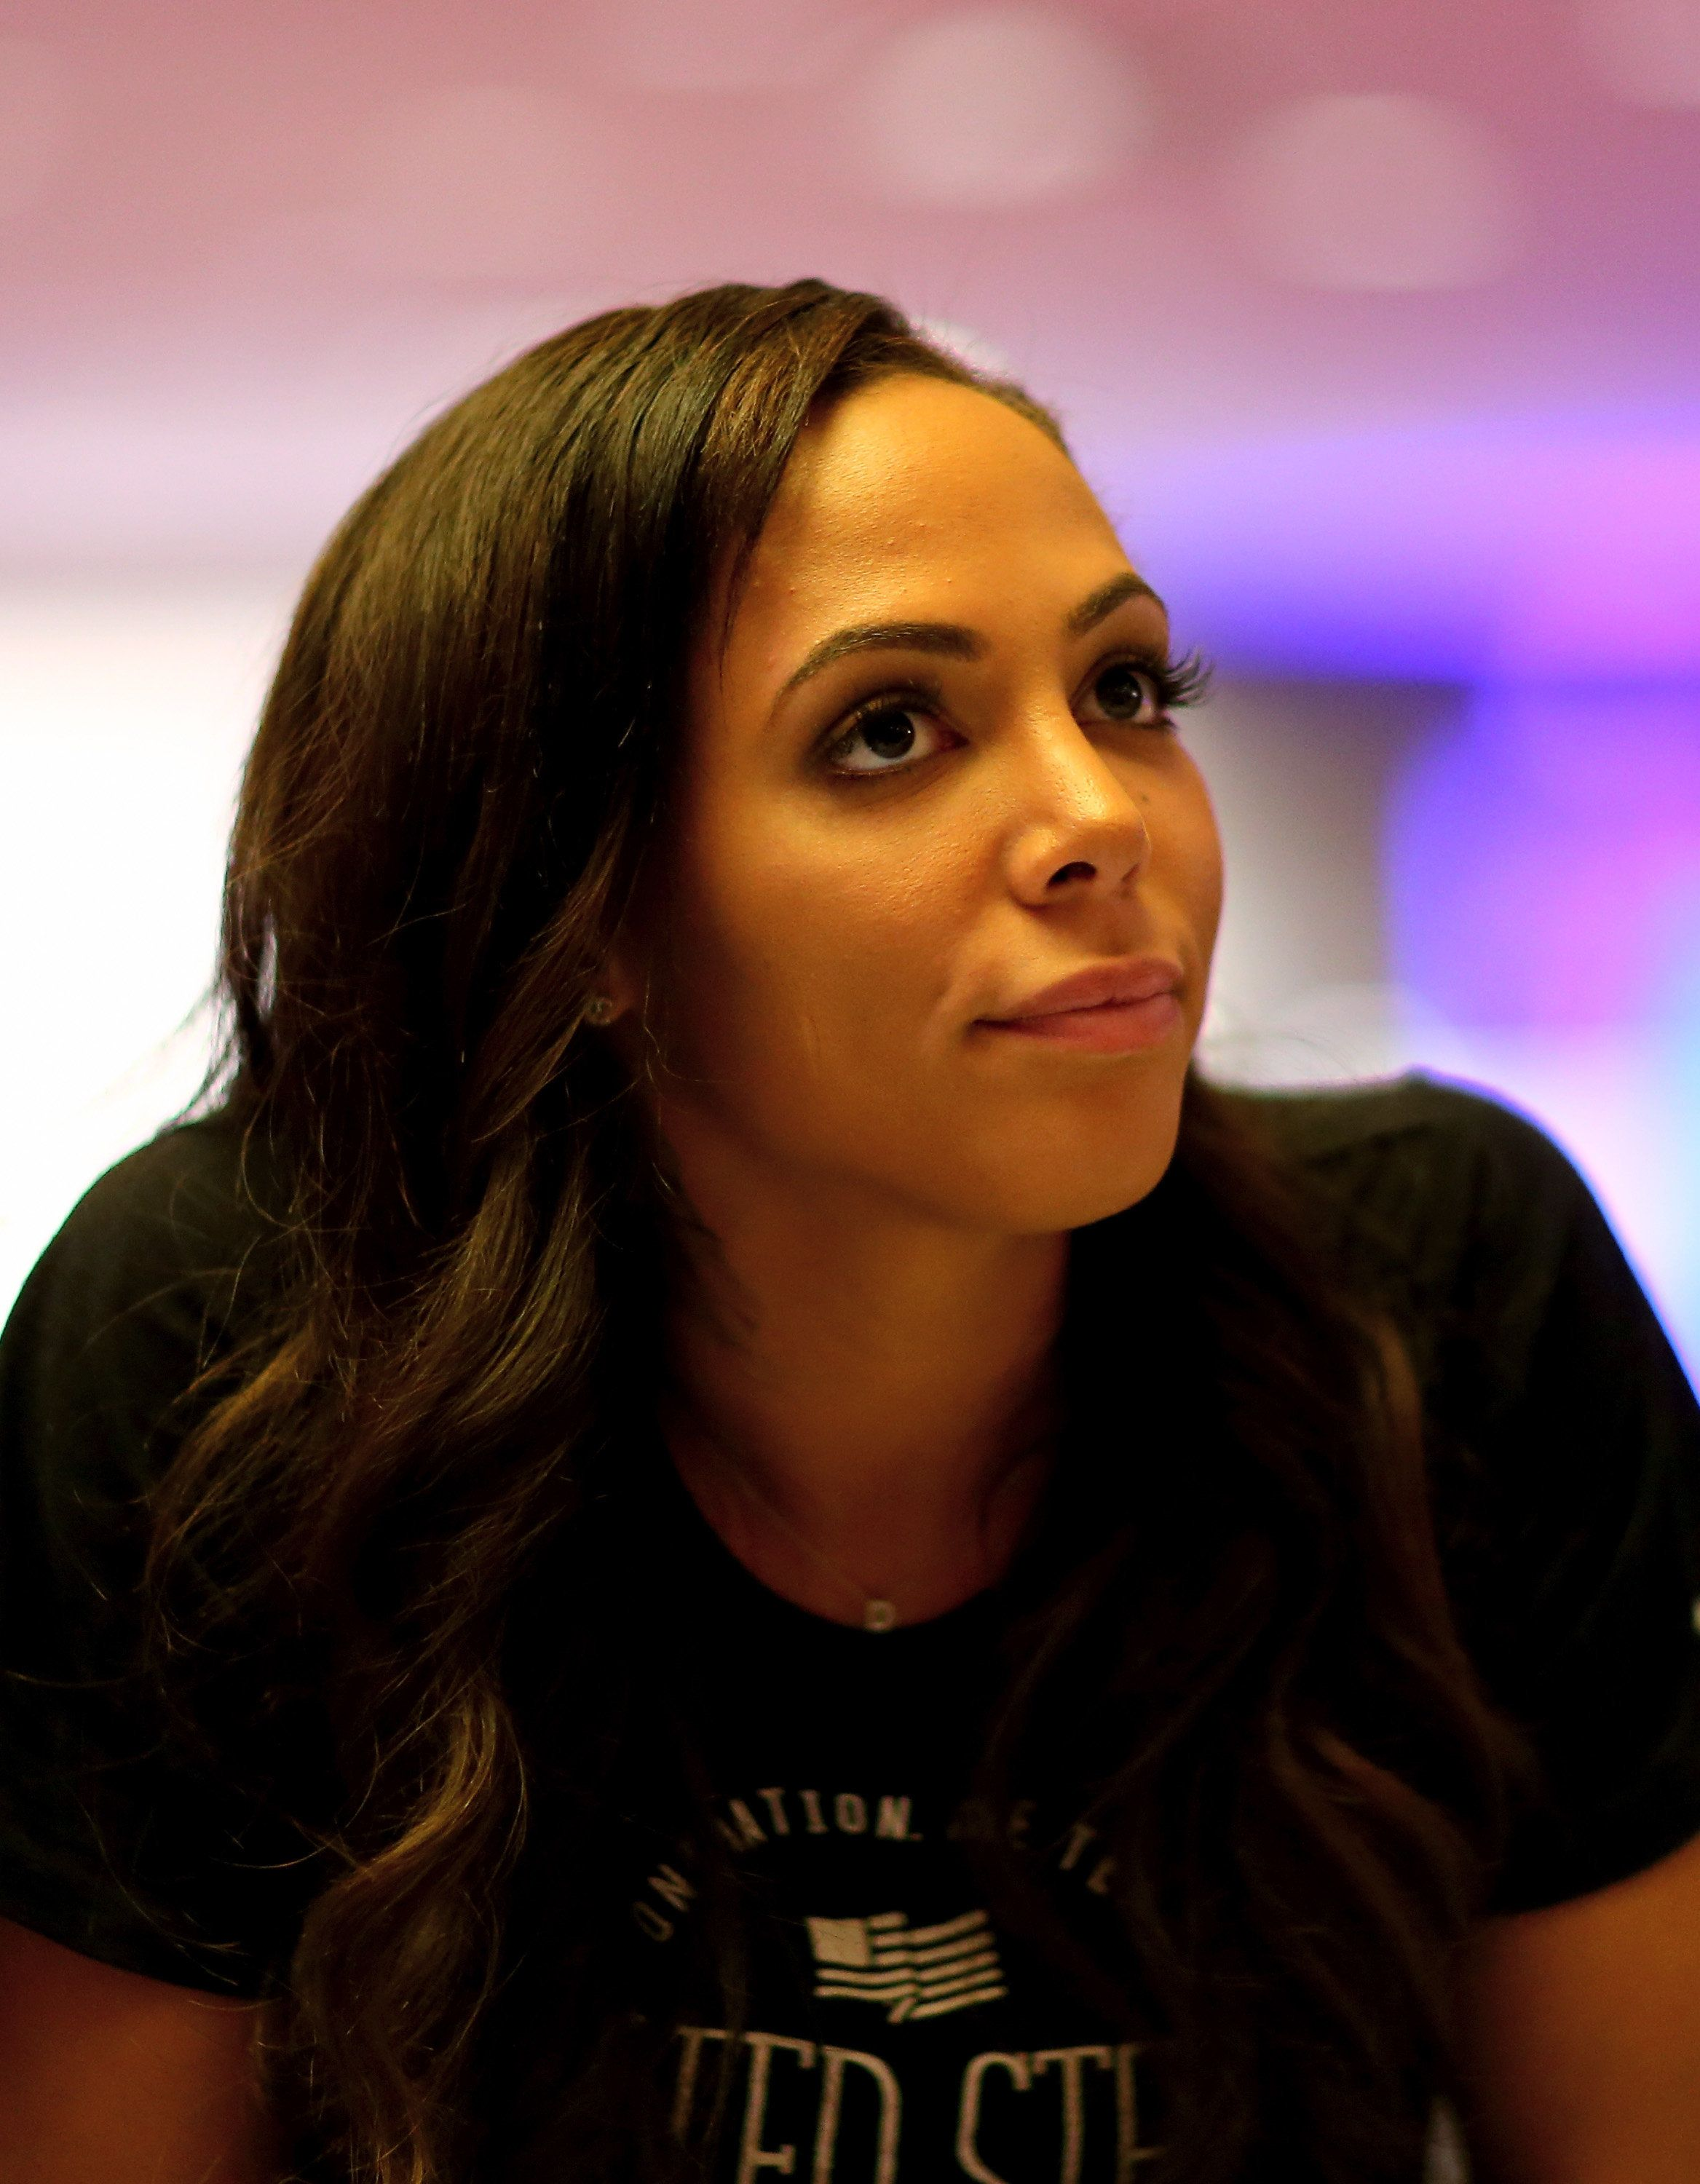 NEW YORK, NY - MAY 27:  Sydney Leroux answers questions during the United States Women's World Cup Media Day at Marriott Marquis Hotel on May 27, 2015 in New York City.  (Photo by Elsa/Getty Images)